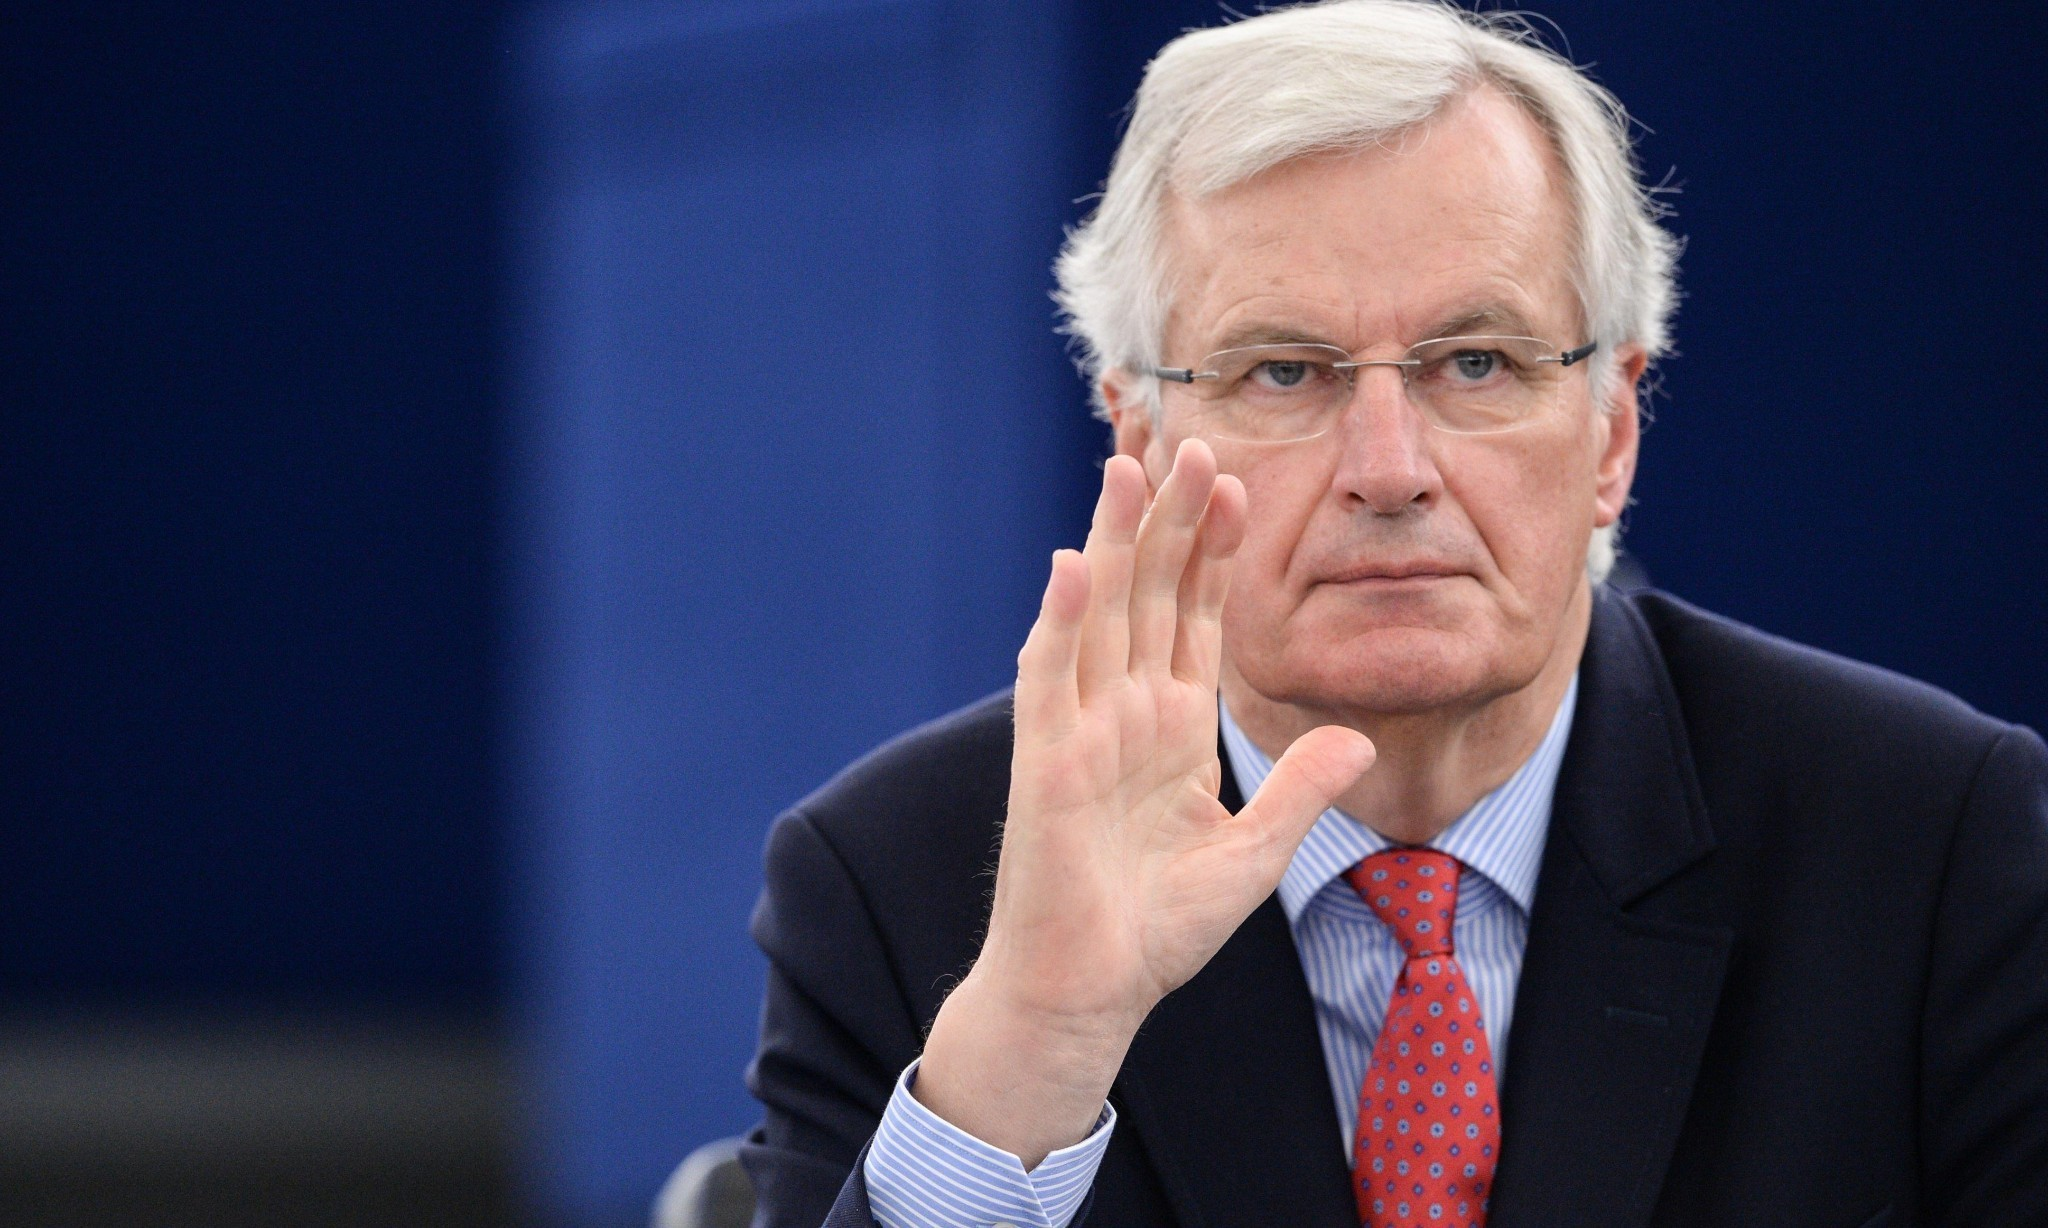 Barnier 'lobbied to stop May withdrawing article 50 in two years'